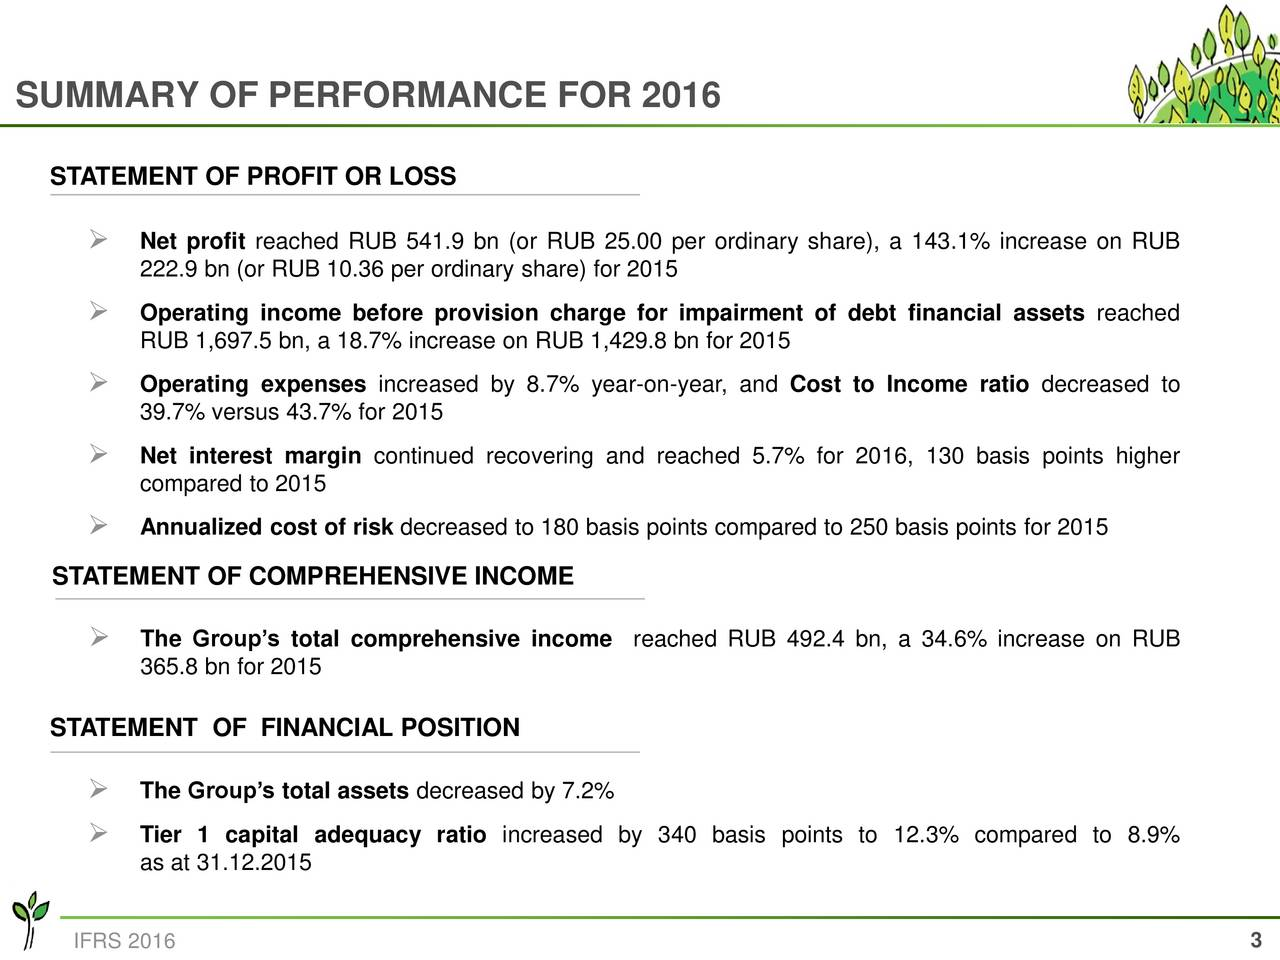 STATEMENT OF PROFIT OR LOSS Net profit reached RUB 541.9 bn (or RUB 25.00 per ordinary share), a 143.1% increase on RUB 222.9 bn (or RUB 10.36 per ordinary share) for 2015 Operating income before provision charge for impairment of debt financial assets reached RUB 1,697.5 bn, a 18.7% increase on RUB 1,429.8 bn for 2015 Operating expenses increased by 8.7% year-on-year, and Cost to Income ratio decreased to 39.7% versus 43.7% for 2015 Net interest margin continued recovering and reached 5.7% for 2016, 130 basis points higher compared to 2015 Annualized cost of risk decreased to 180 basis points compared to 250 basis points for 2015 STATEMENT OF COMPREHENSIVE INCOME The Groups total comprehensive income reached RUB 492.4 bn, a 34.6% increase on RUB 365.8 bn for 2015 STATEMENT OF FINANCIAL POSITION The Groups total assets decreased by 7.2% Tier 1 capital adequacy ratio increased by 340 basis points to 12.3% compared to 8.9% as at 31.12.2015 3